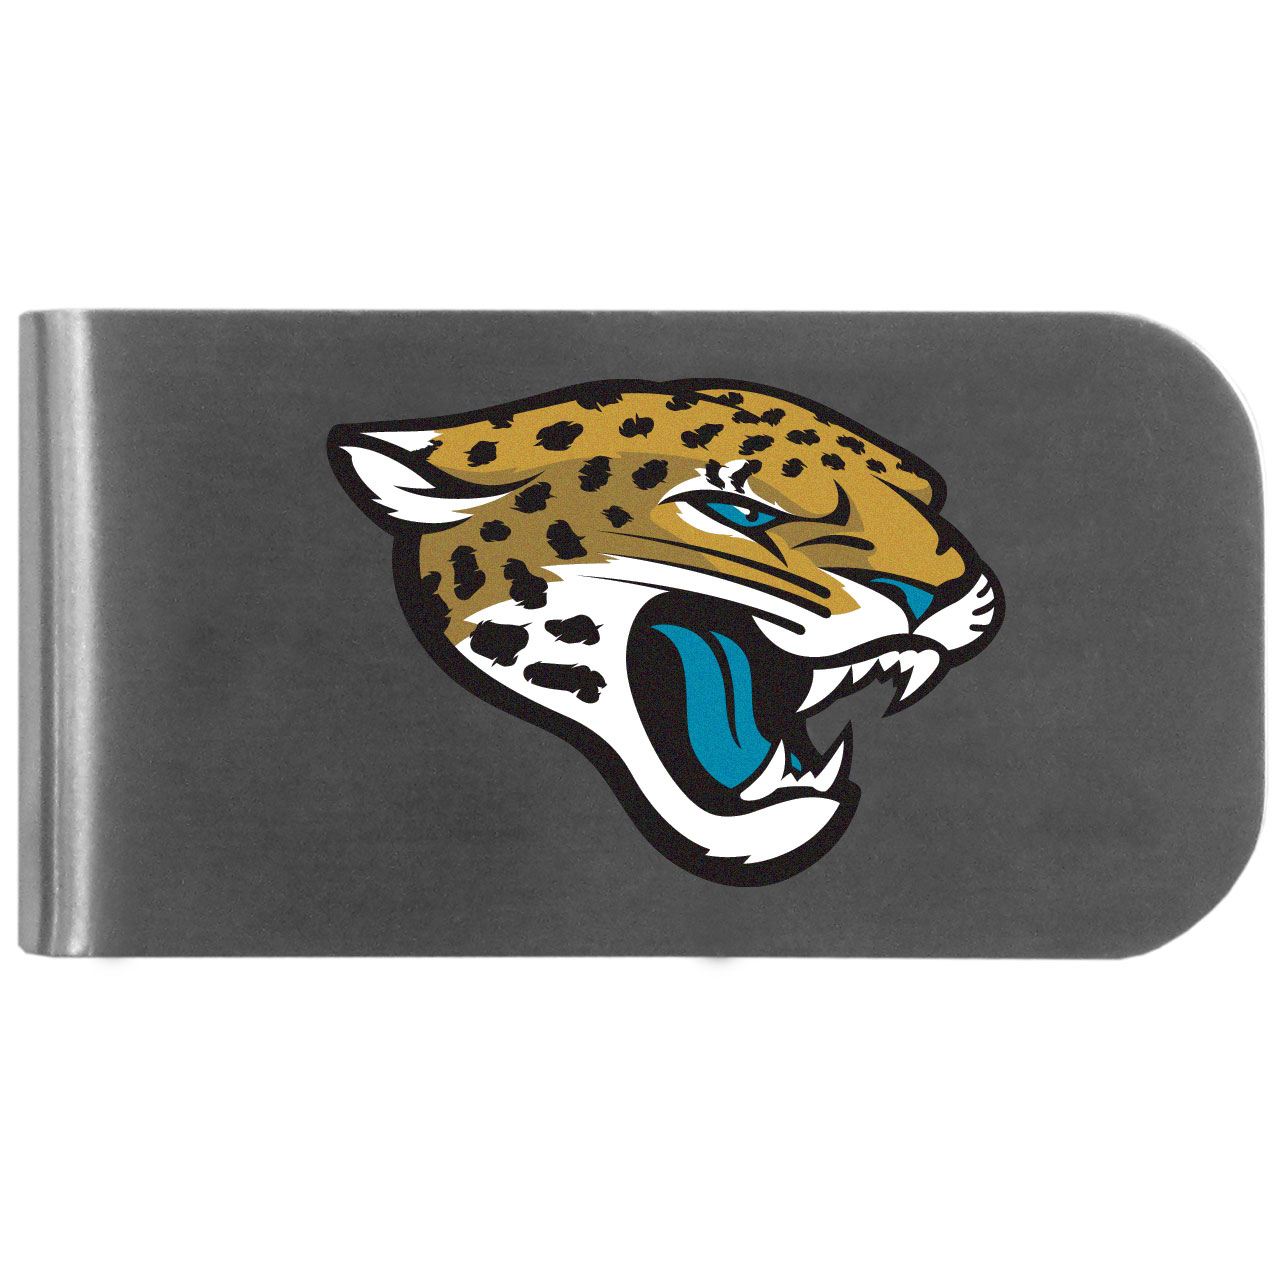 Jacksonville Jaguars Logo Bottle Opener Money Clip - This unique money clip features a classic, brushed-metal finish with a handy bottle opener feature on the back. The clip has the Jacksonville Jaguars logo expertly printed on the front of the clip.